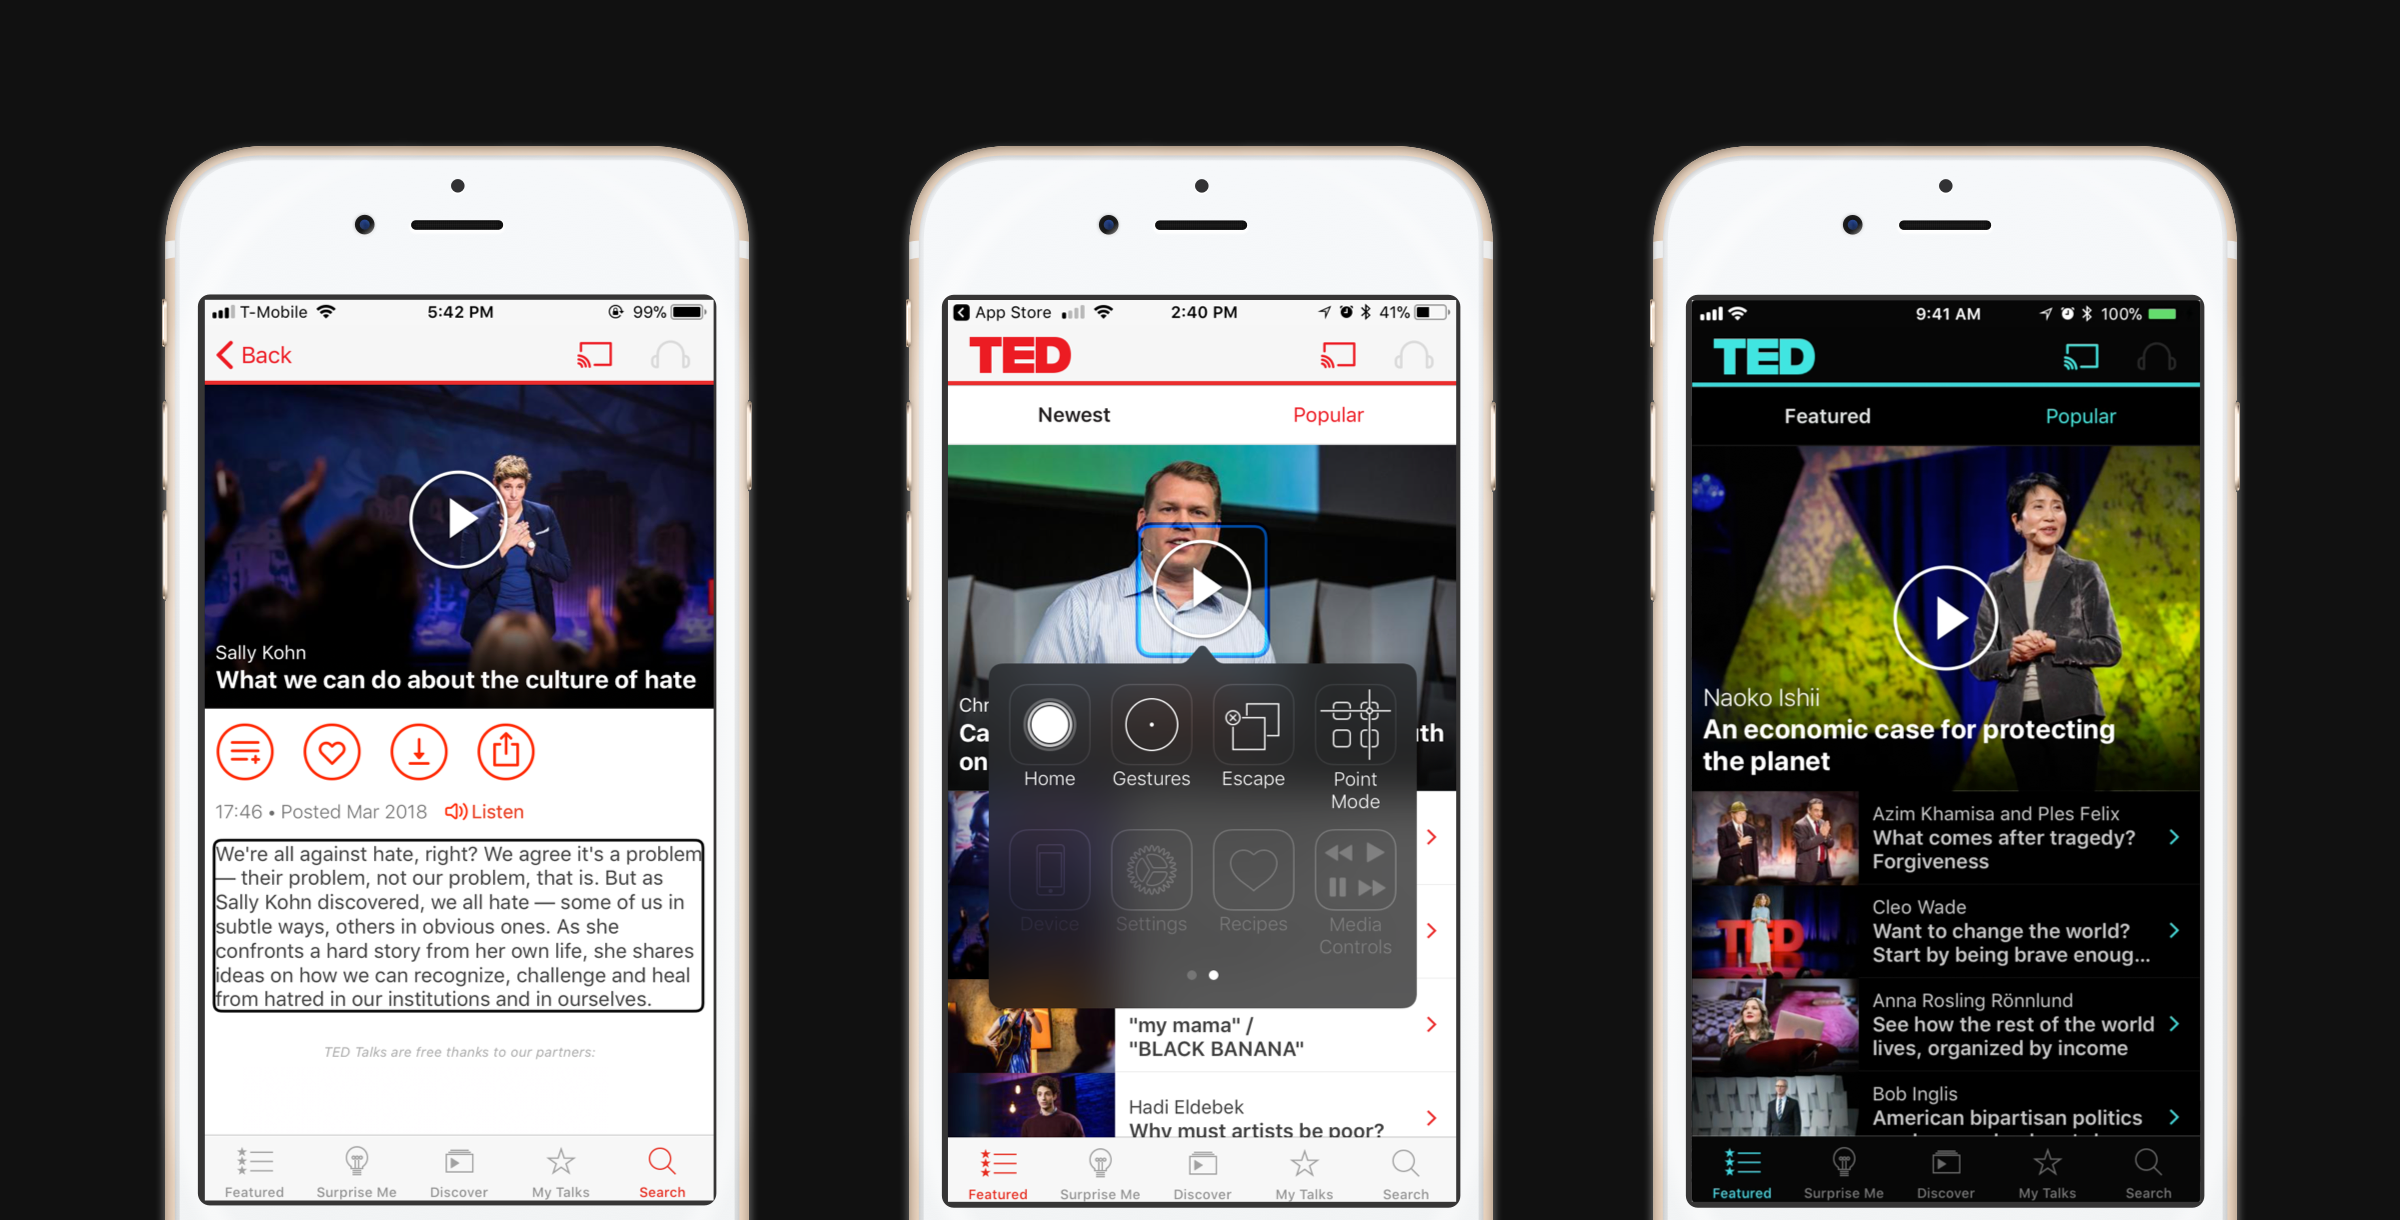 TED app accessibility